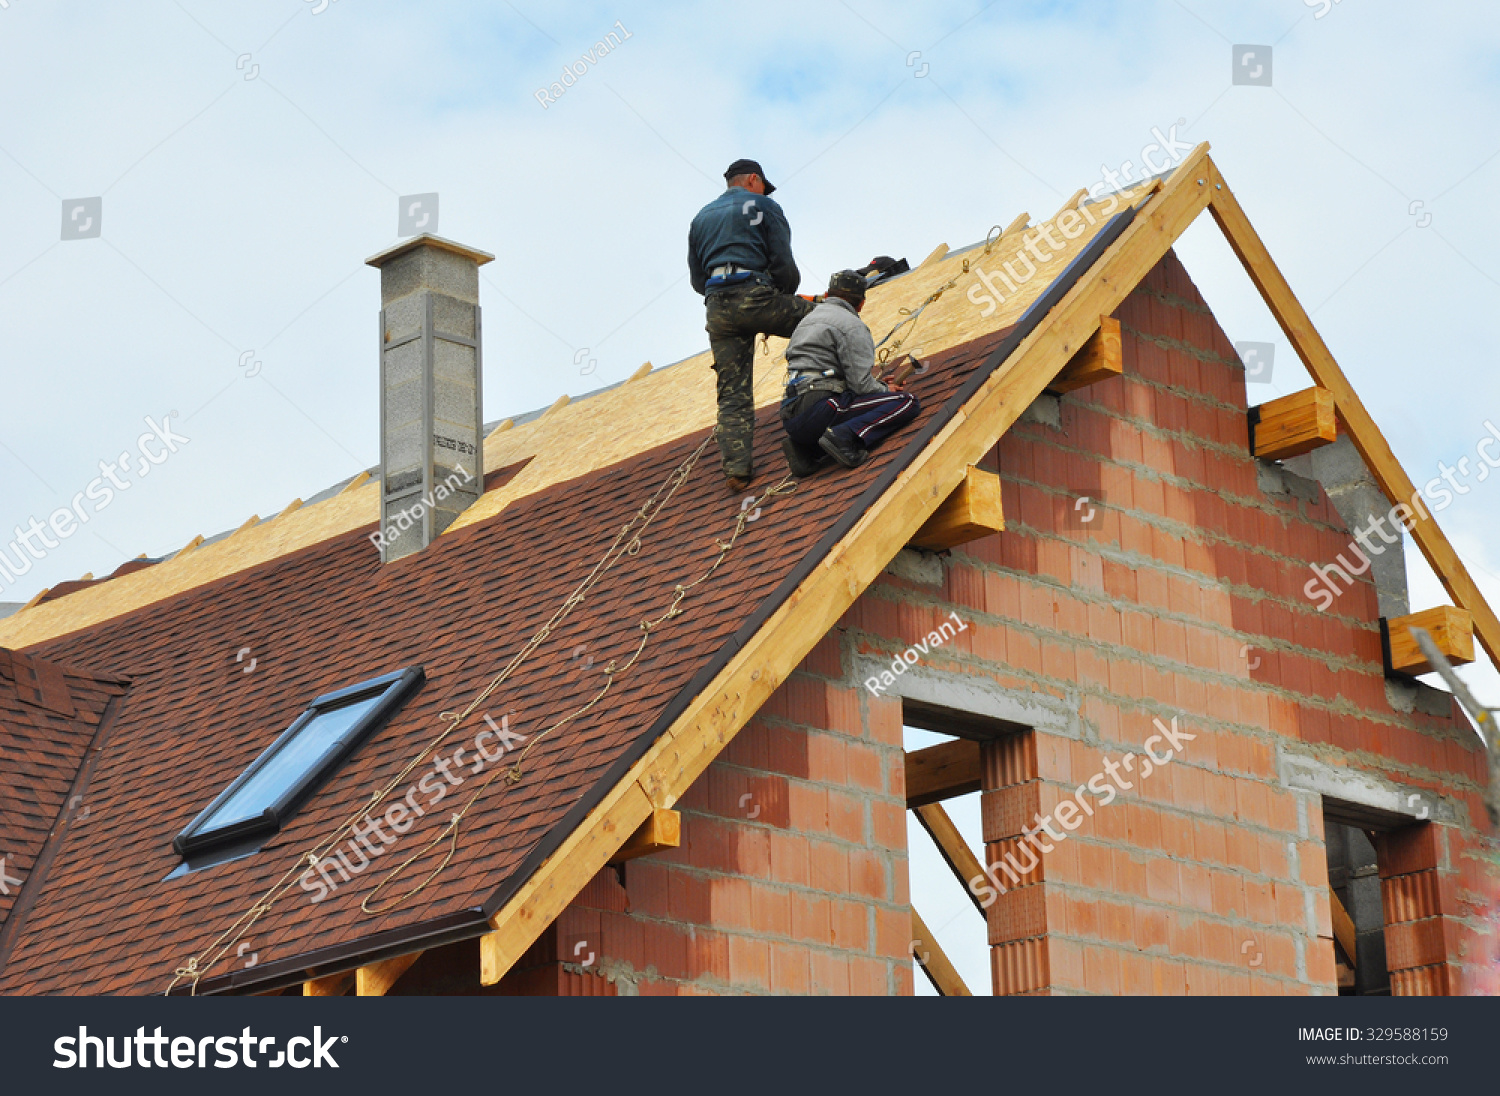 Roofing construction building new brick house stock photo for House roof construction